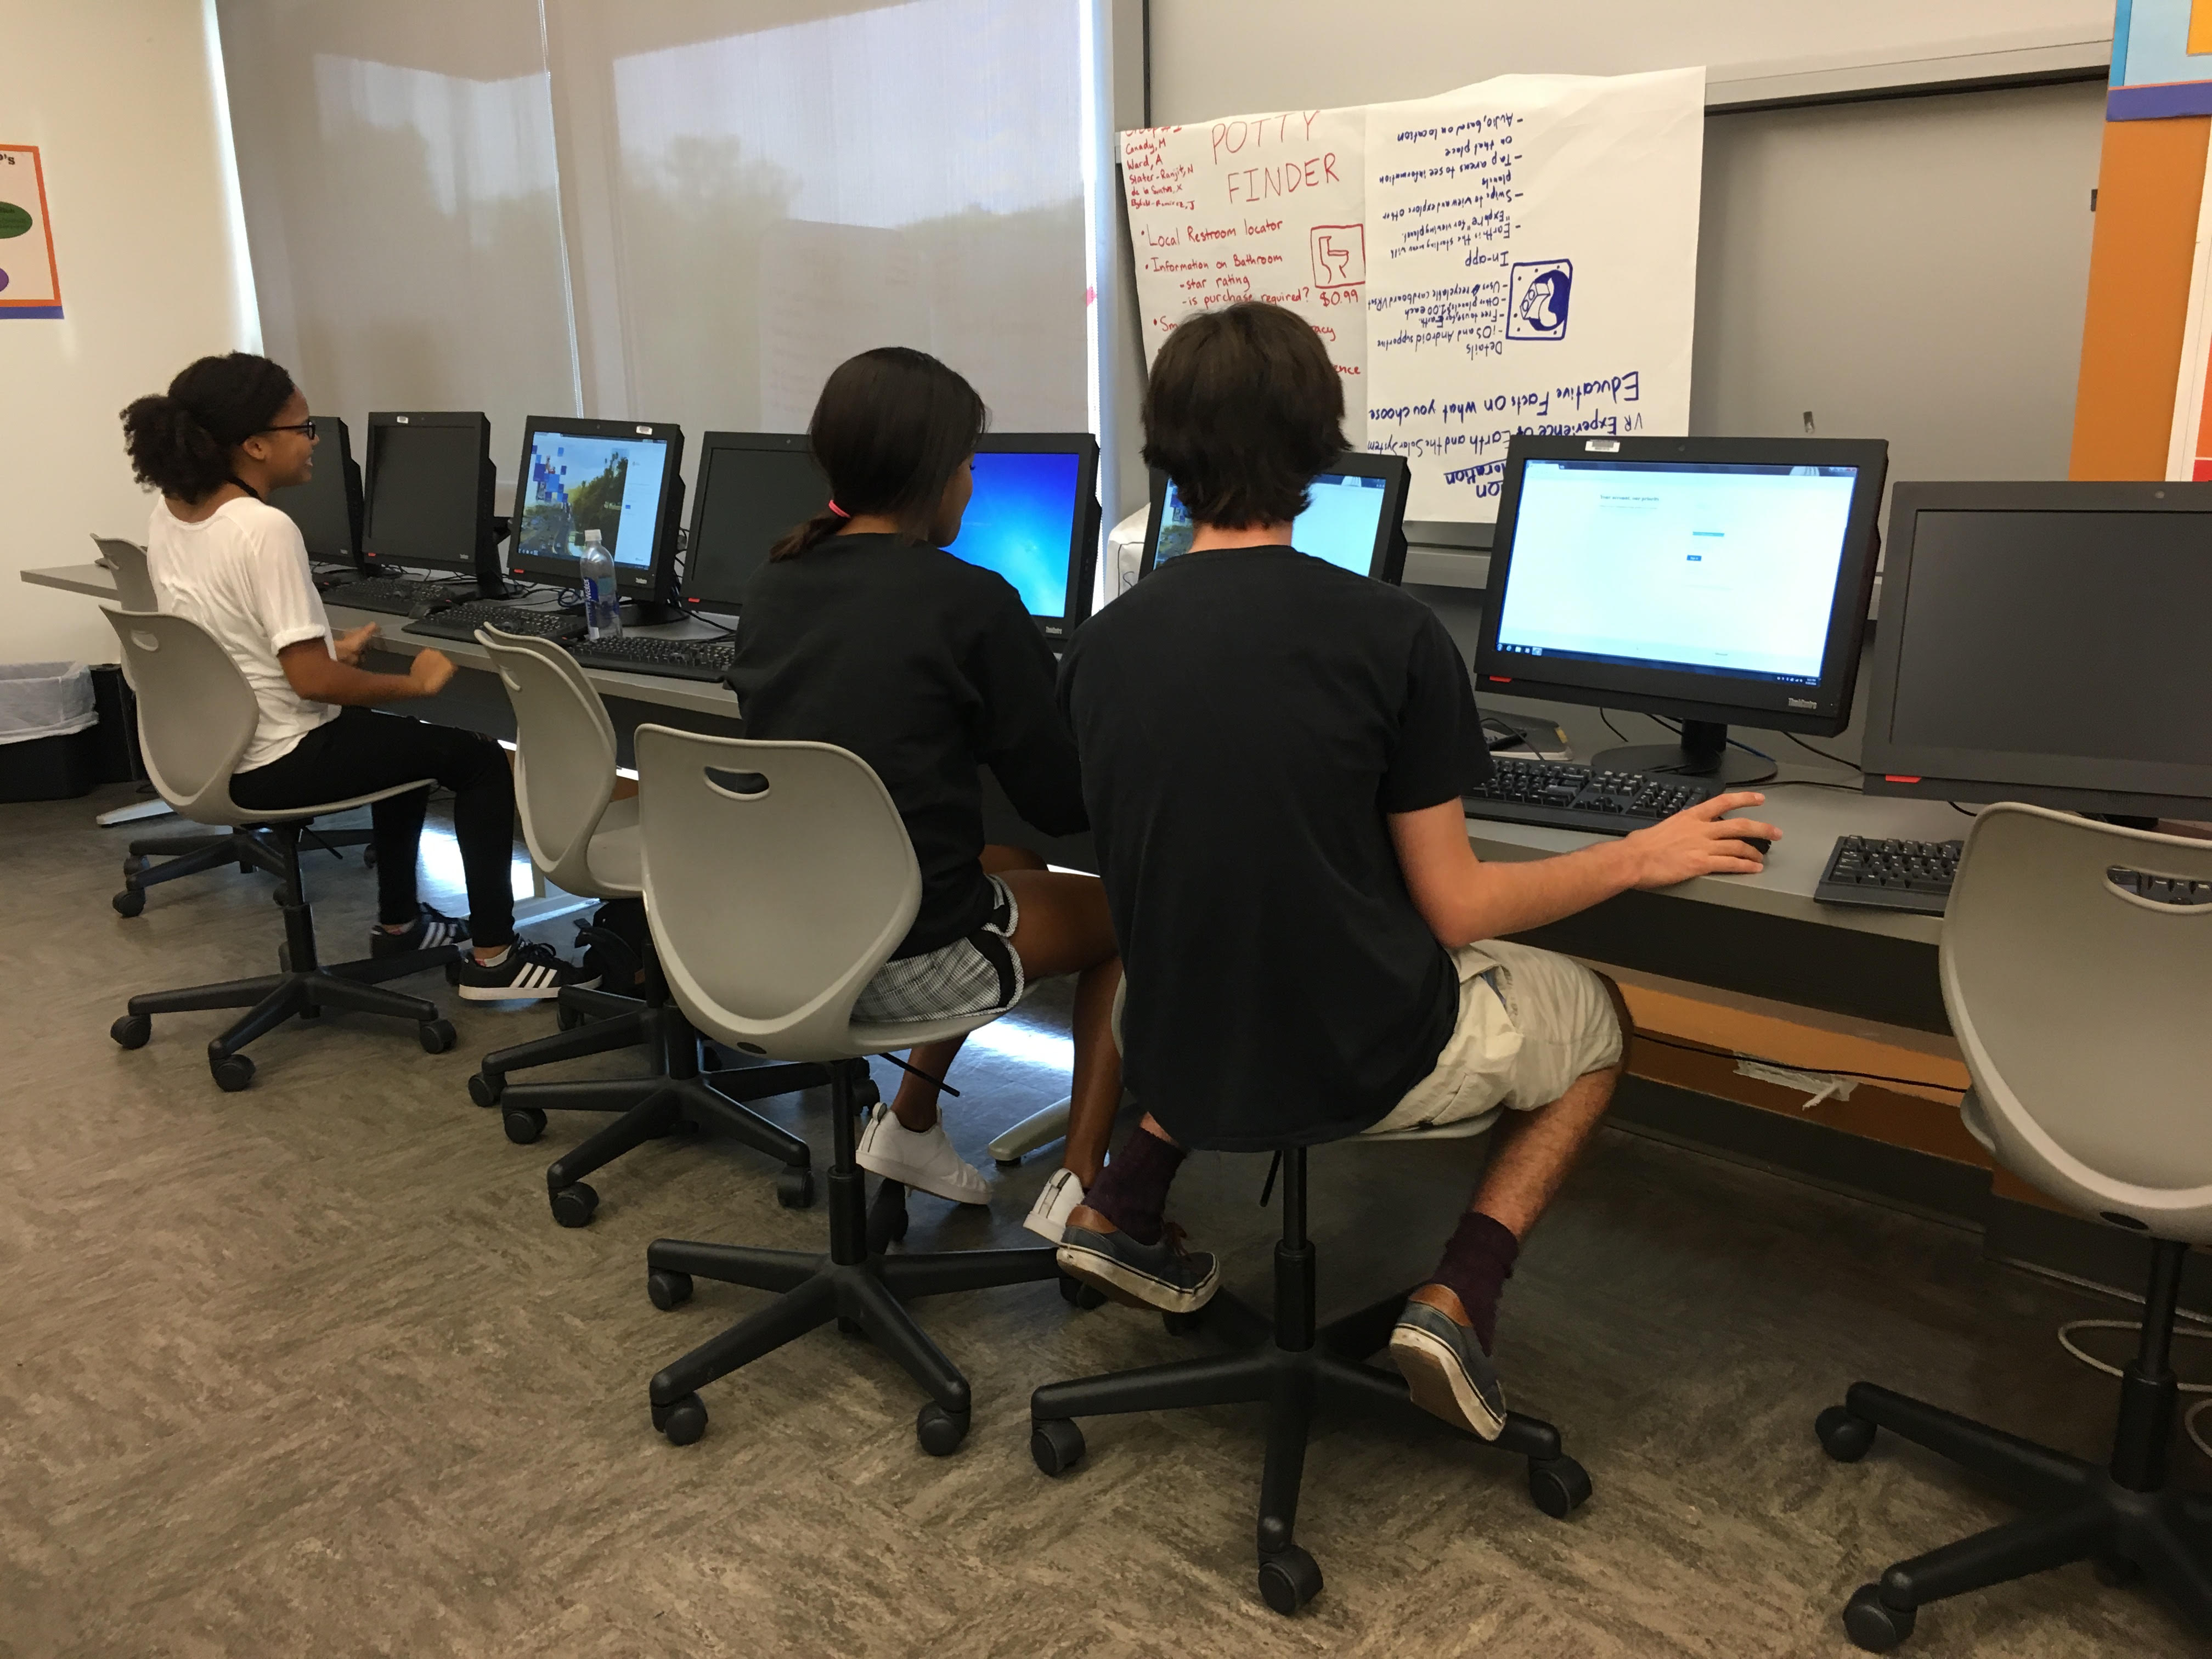 New computer science club open up  entrepreneurship opportunities